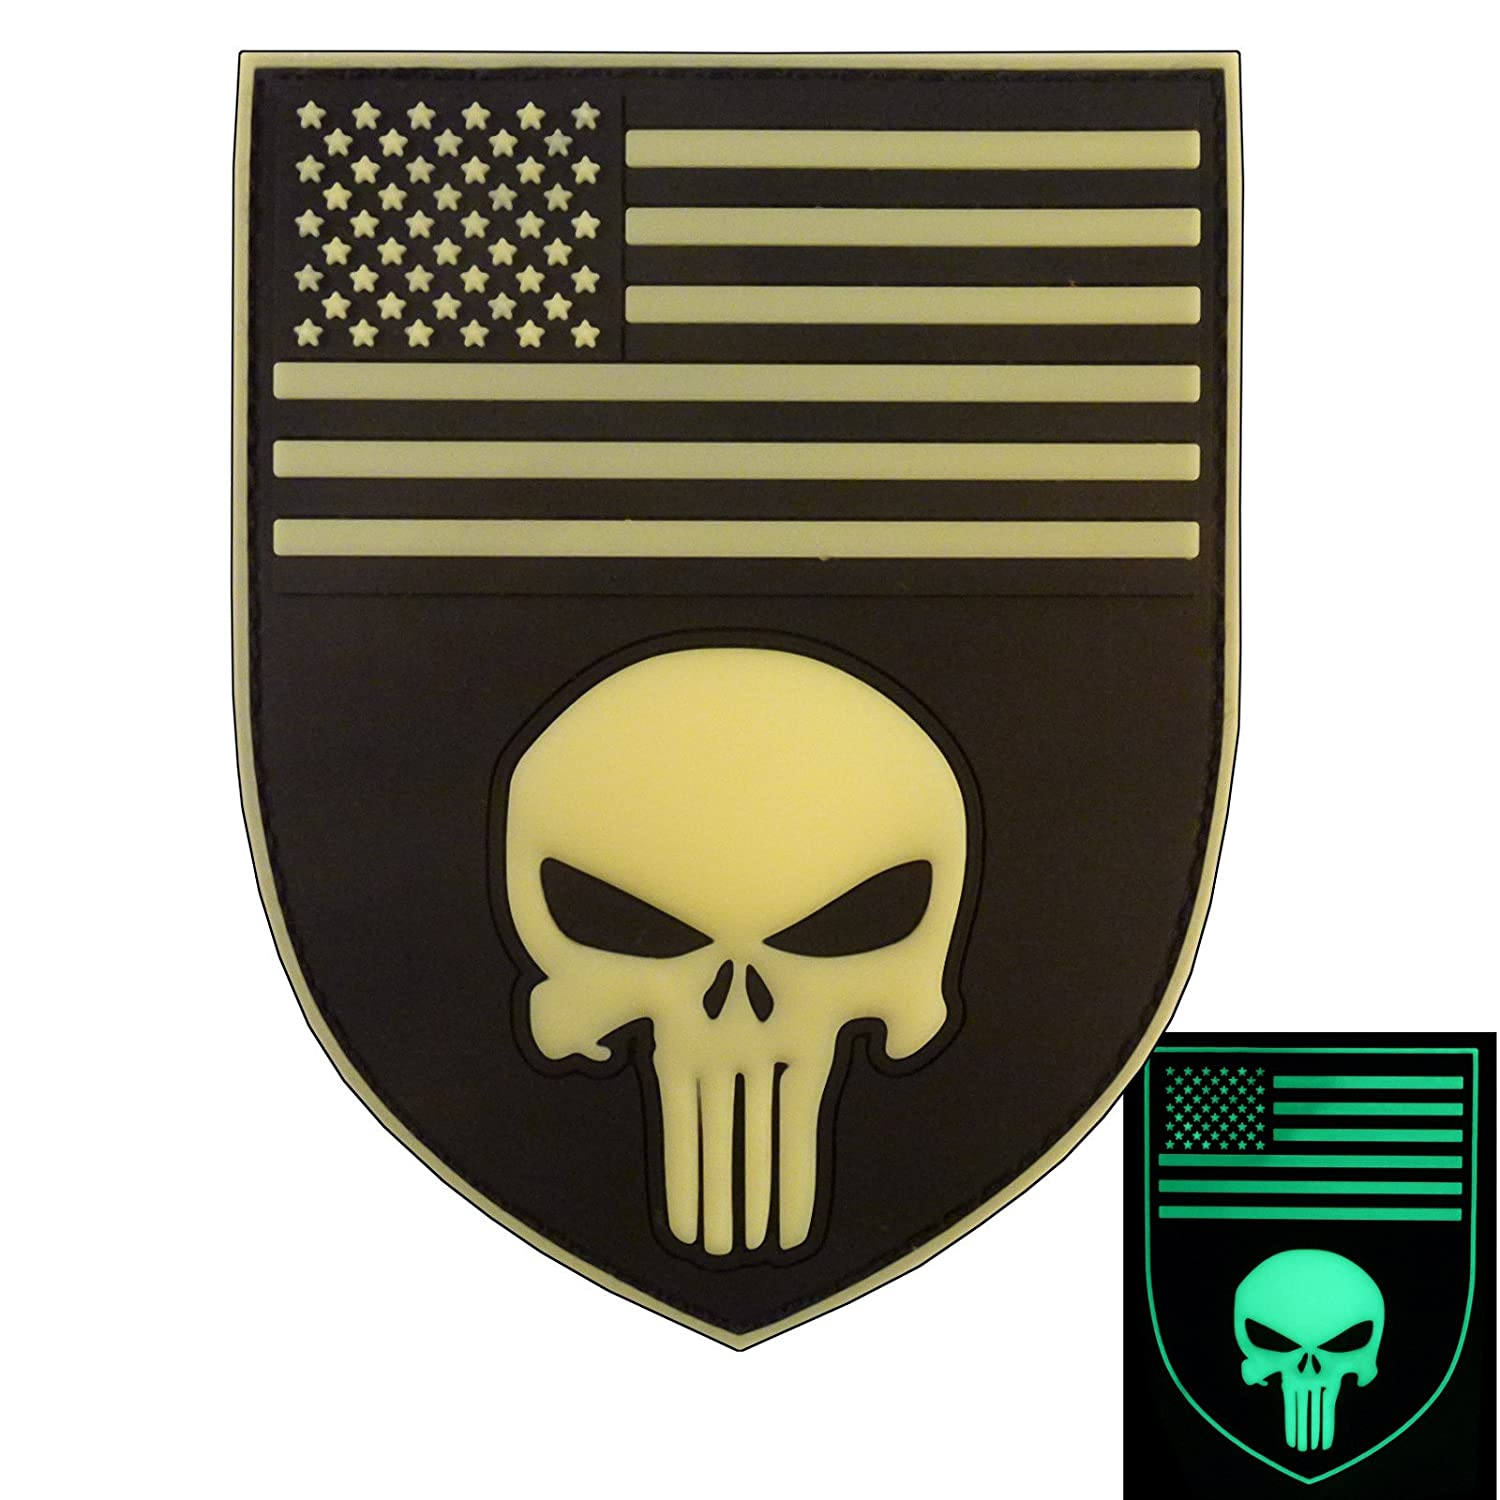 3D Glow Dark Punitore Punisher Shield USA American Bandiera PVC Gomma Hook& Loop Toppa Patch 2AFTER1 P.1717.2.V.F